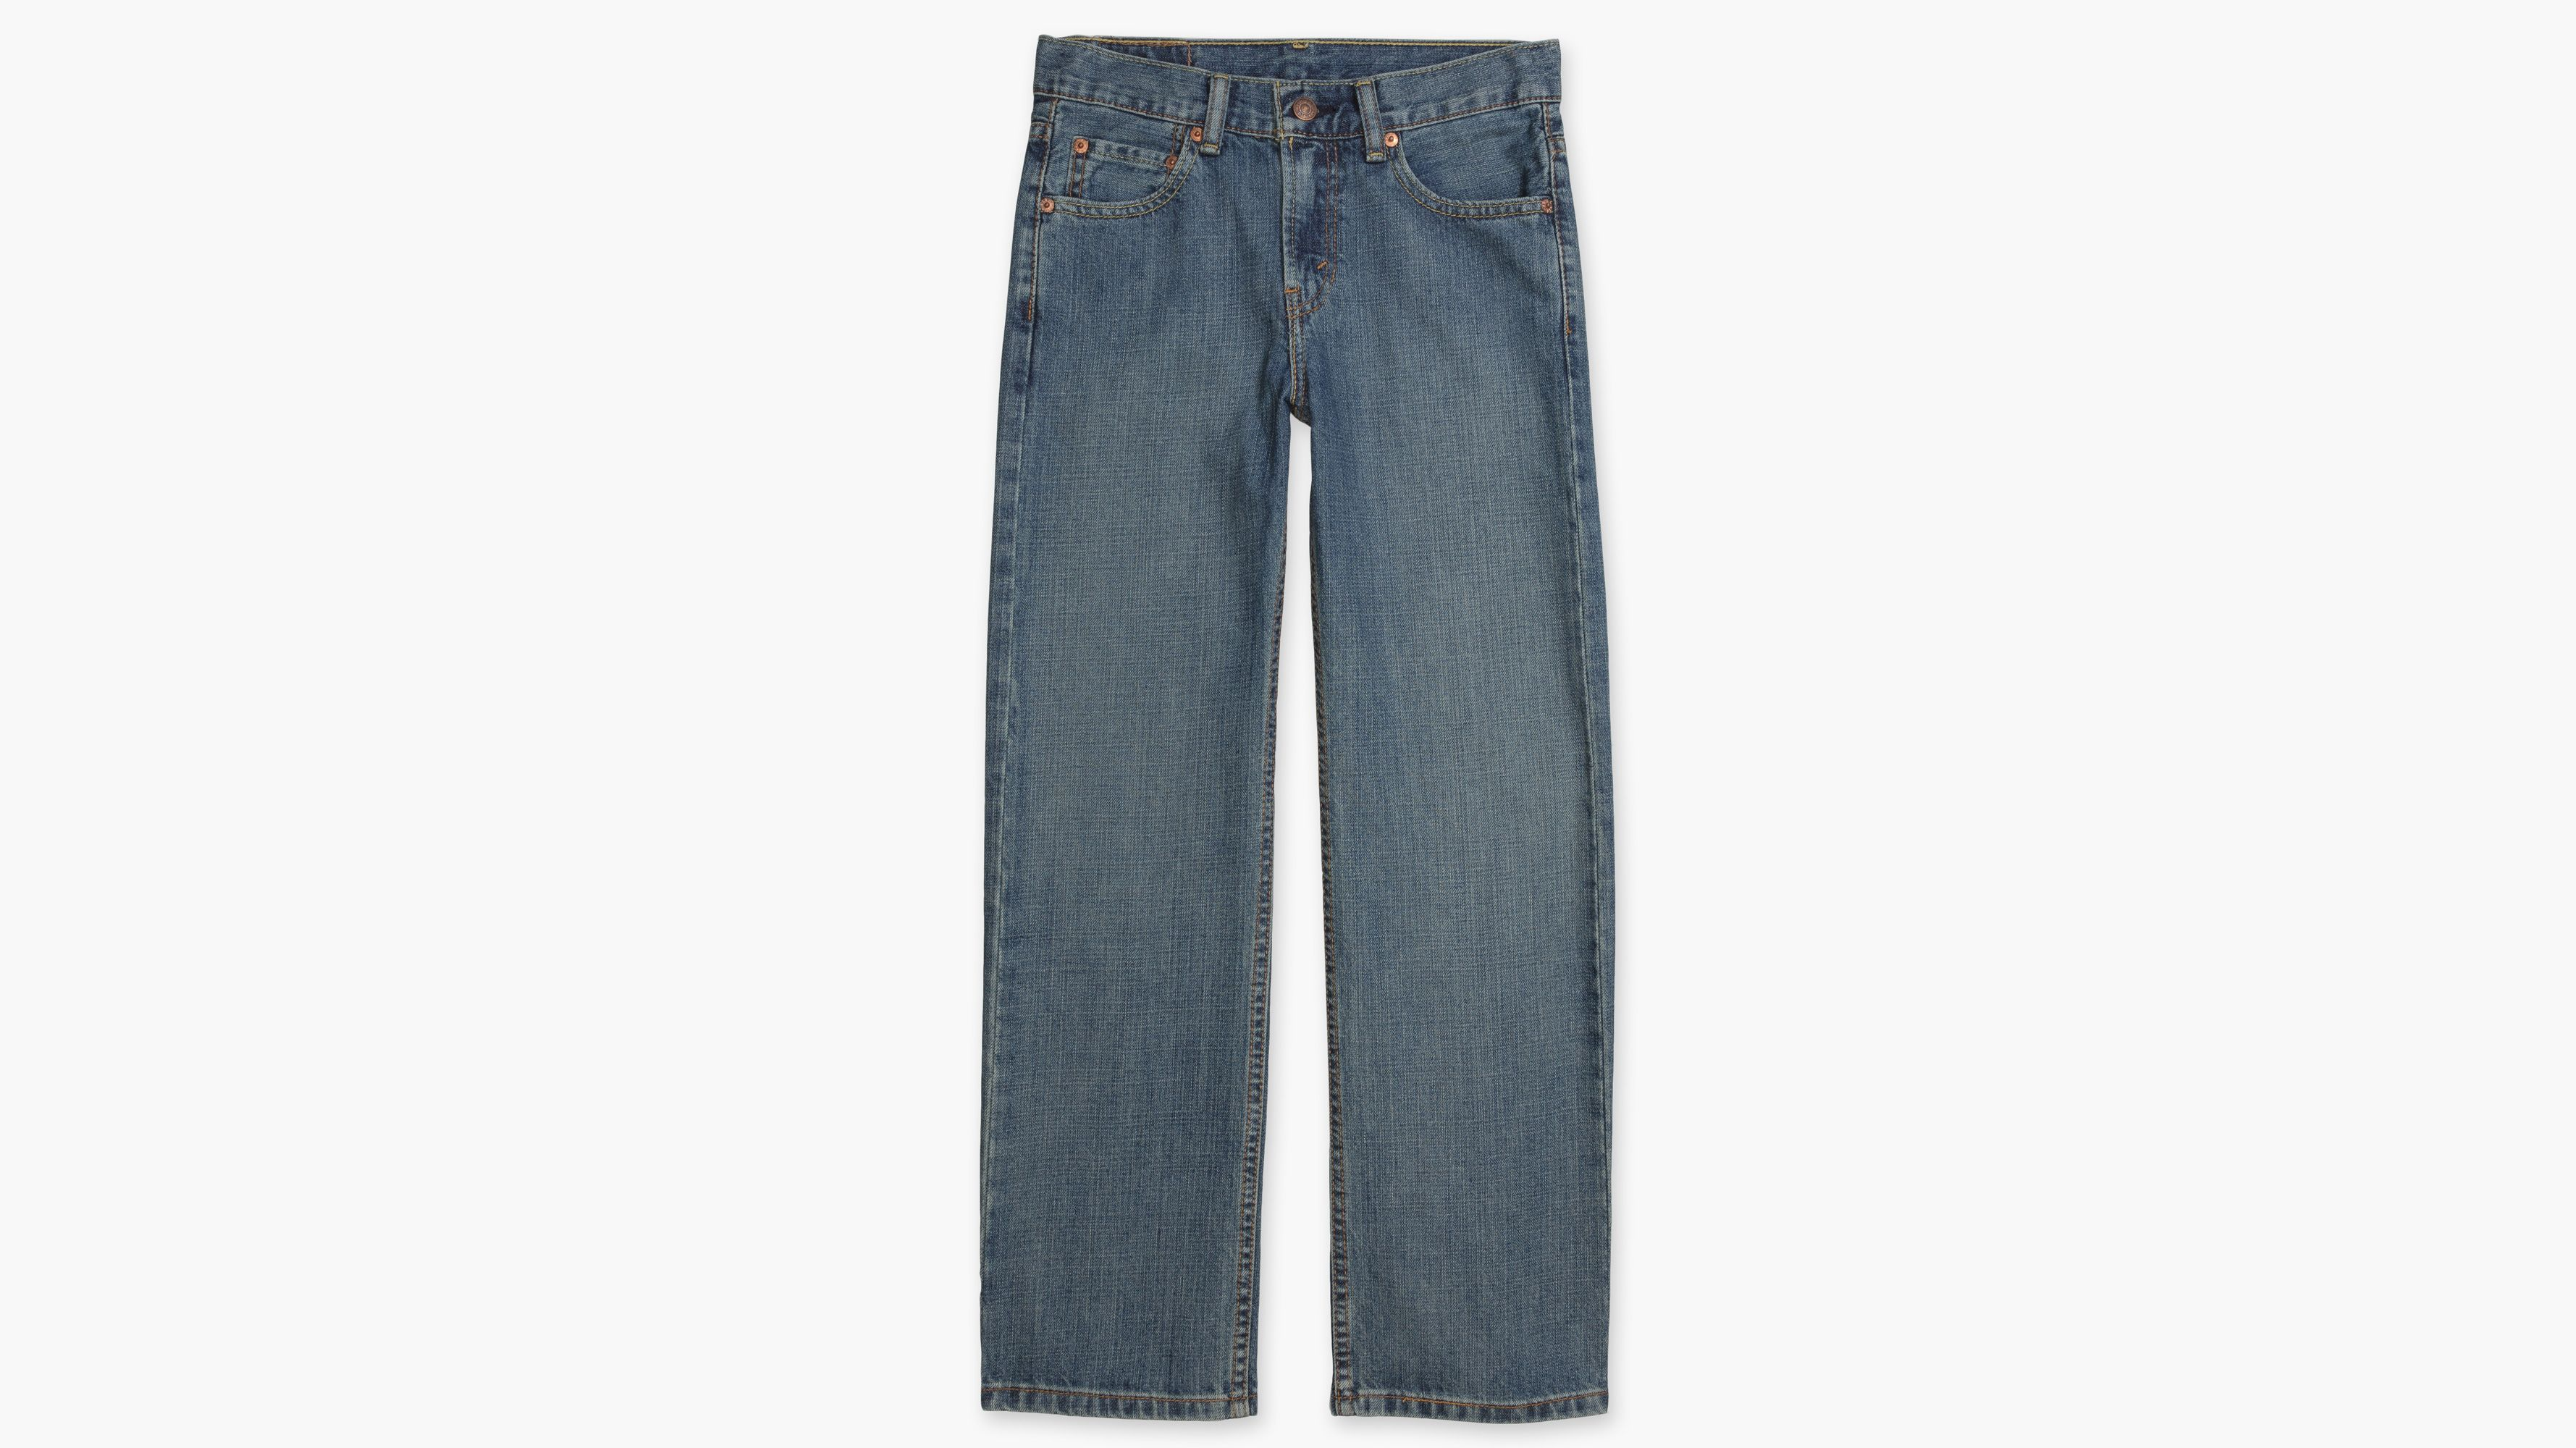 Boys (8-20) 550™ Relaxed Fit Jeans - Clean Cross Hatch